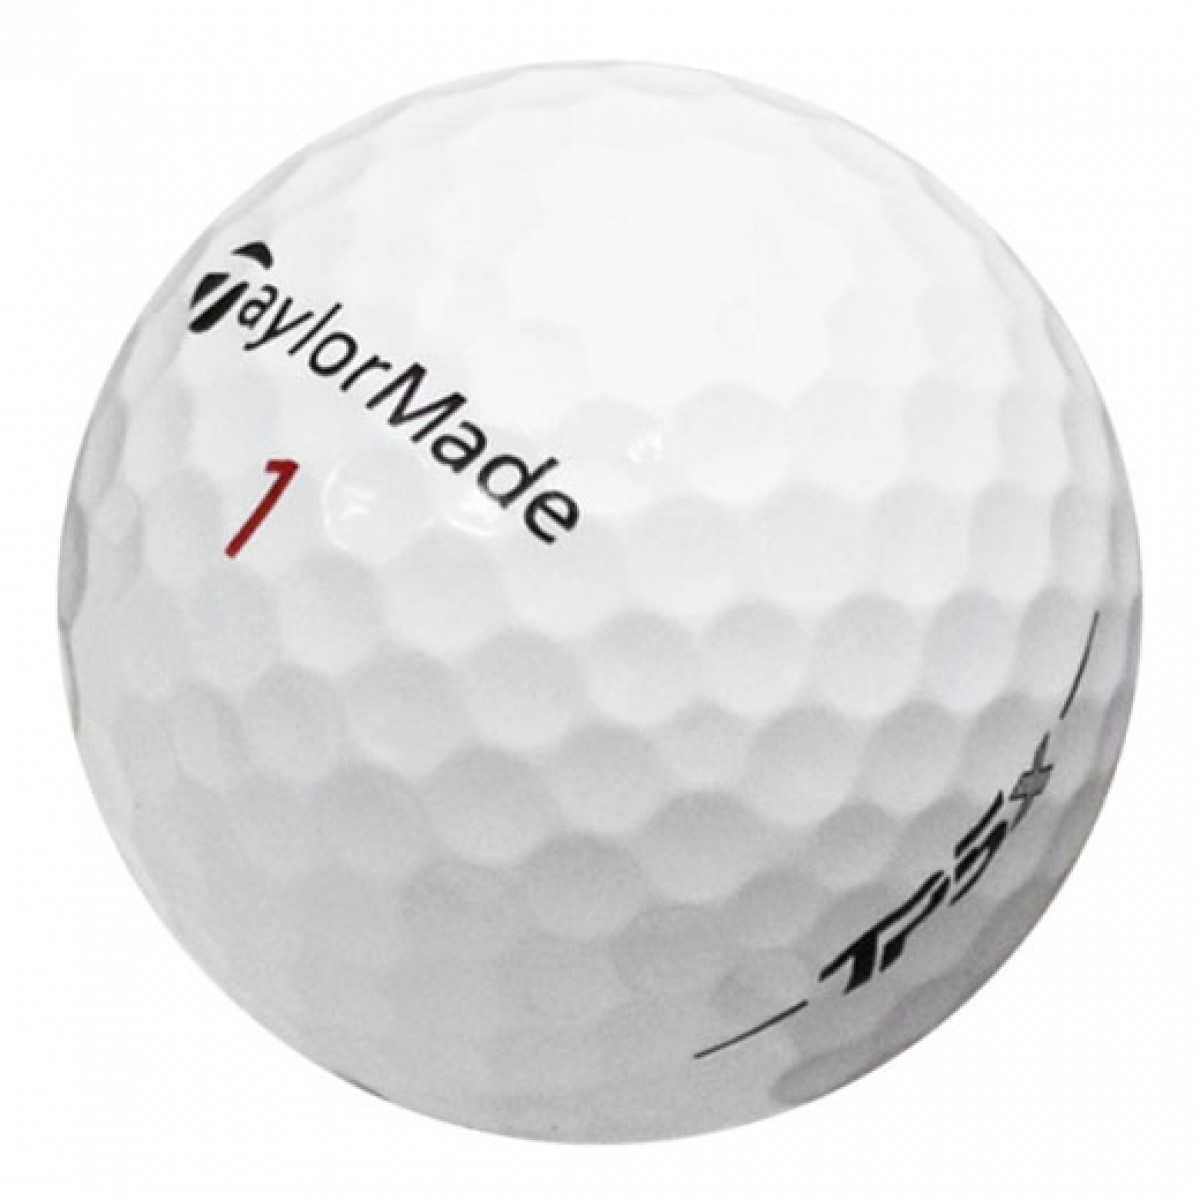 TaylorMade TP5x used golf balls